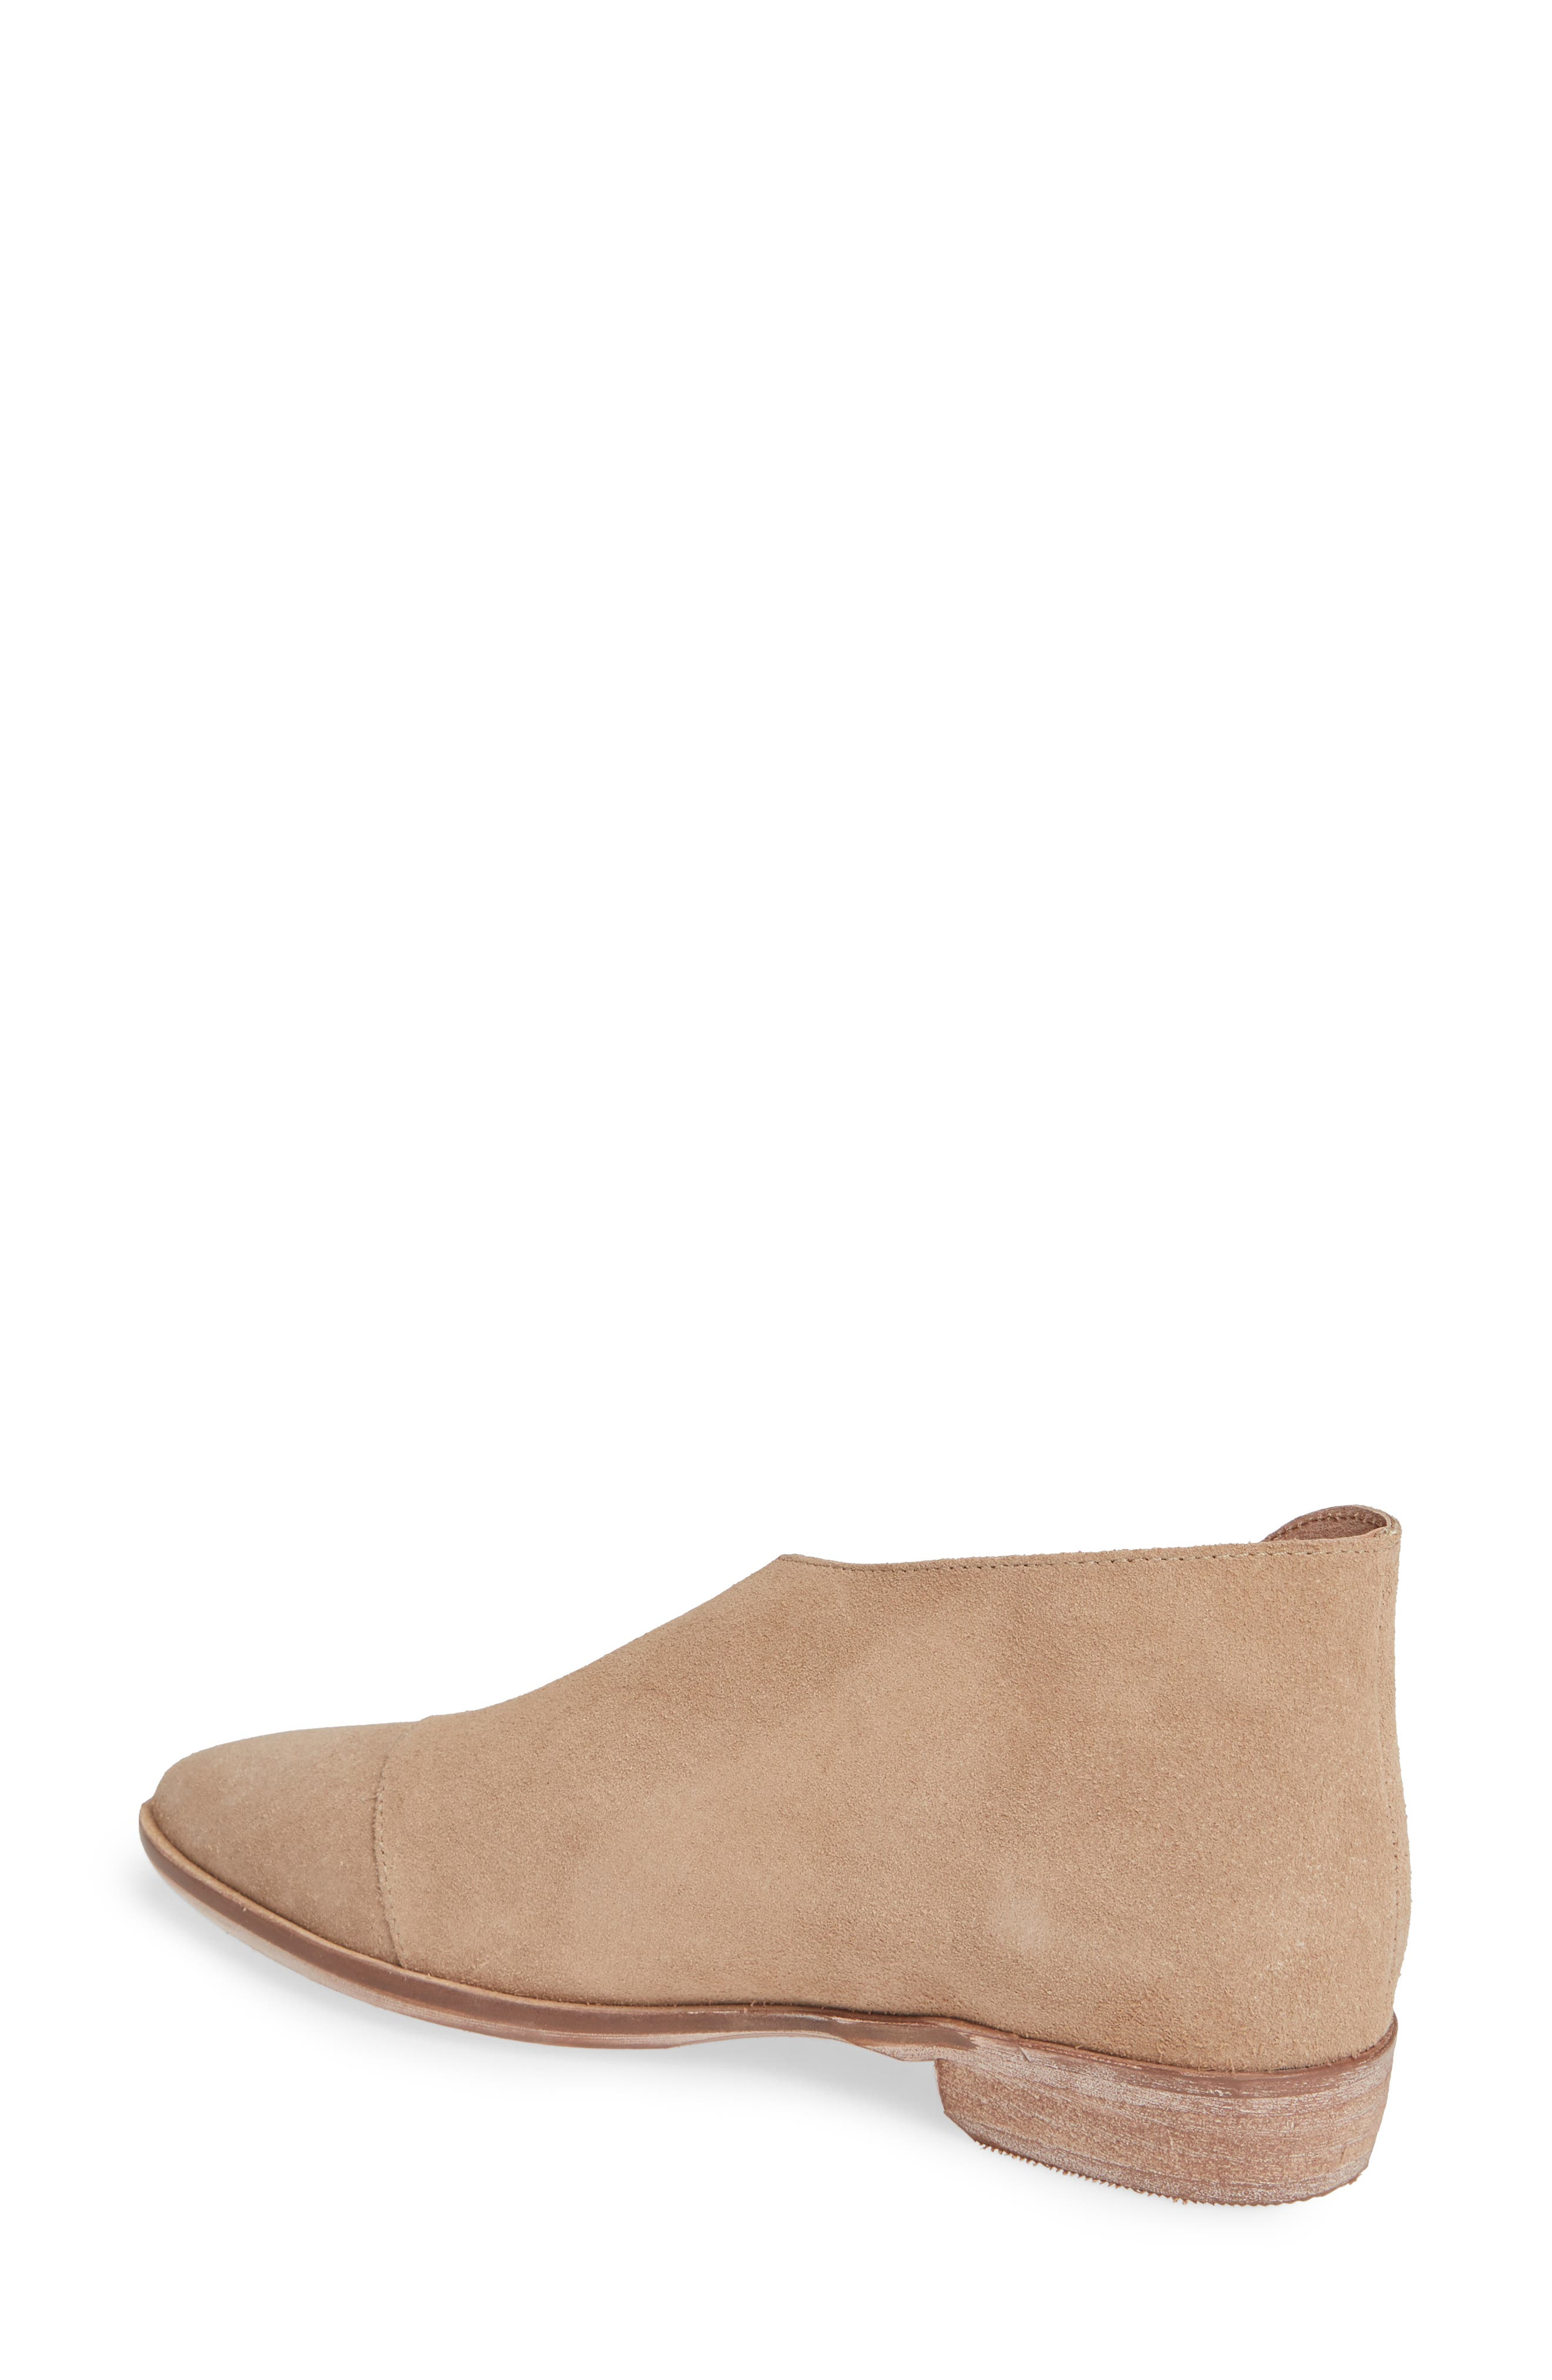 'Royale' Pointy Toe Flat,                             Alternate thumbnail 2, color,                             BEIGE SUEDE